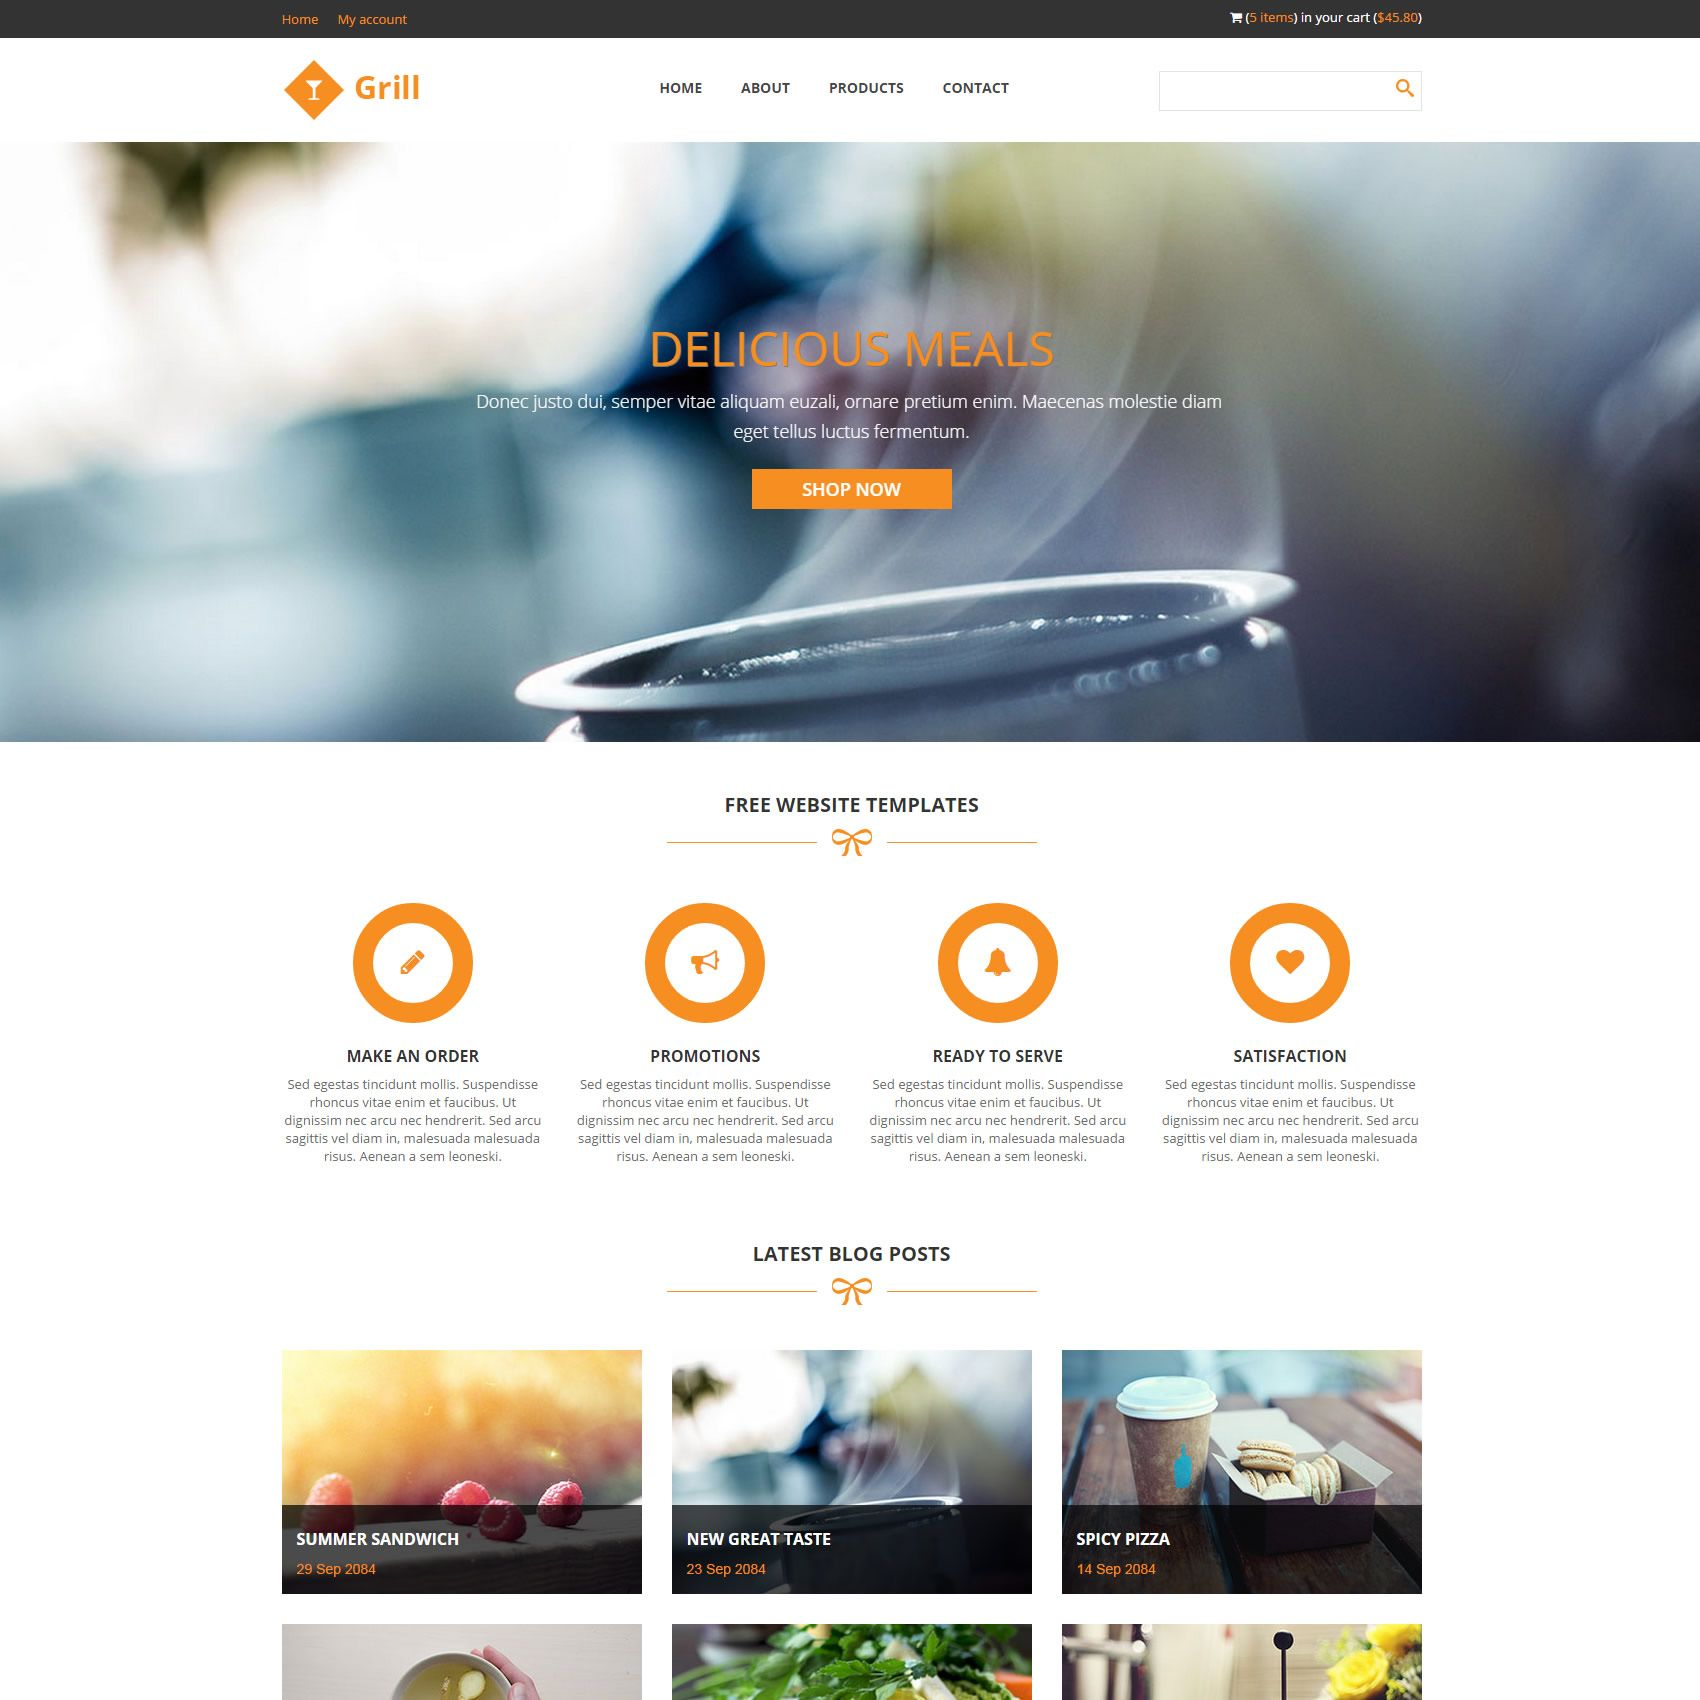 Grill is free restaurant website template, bootstrap